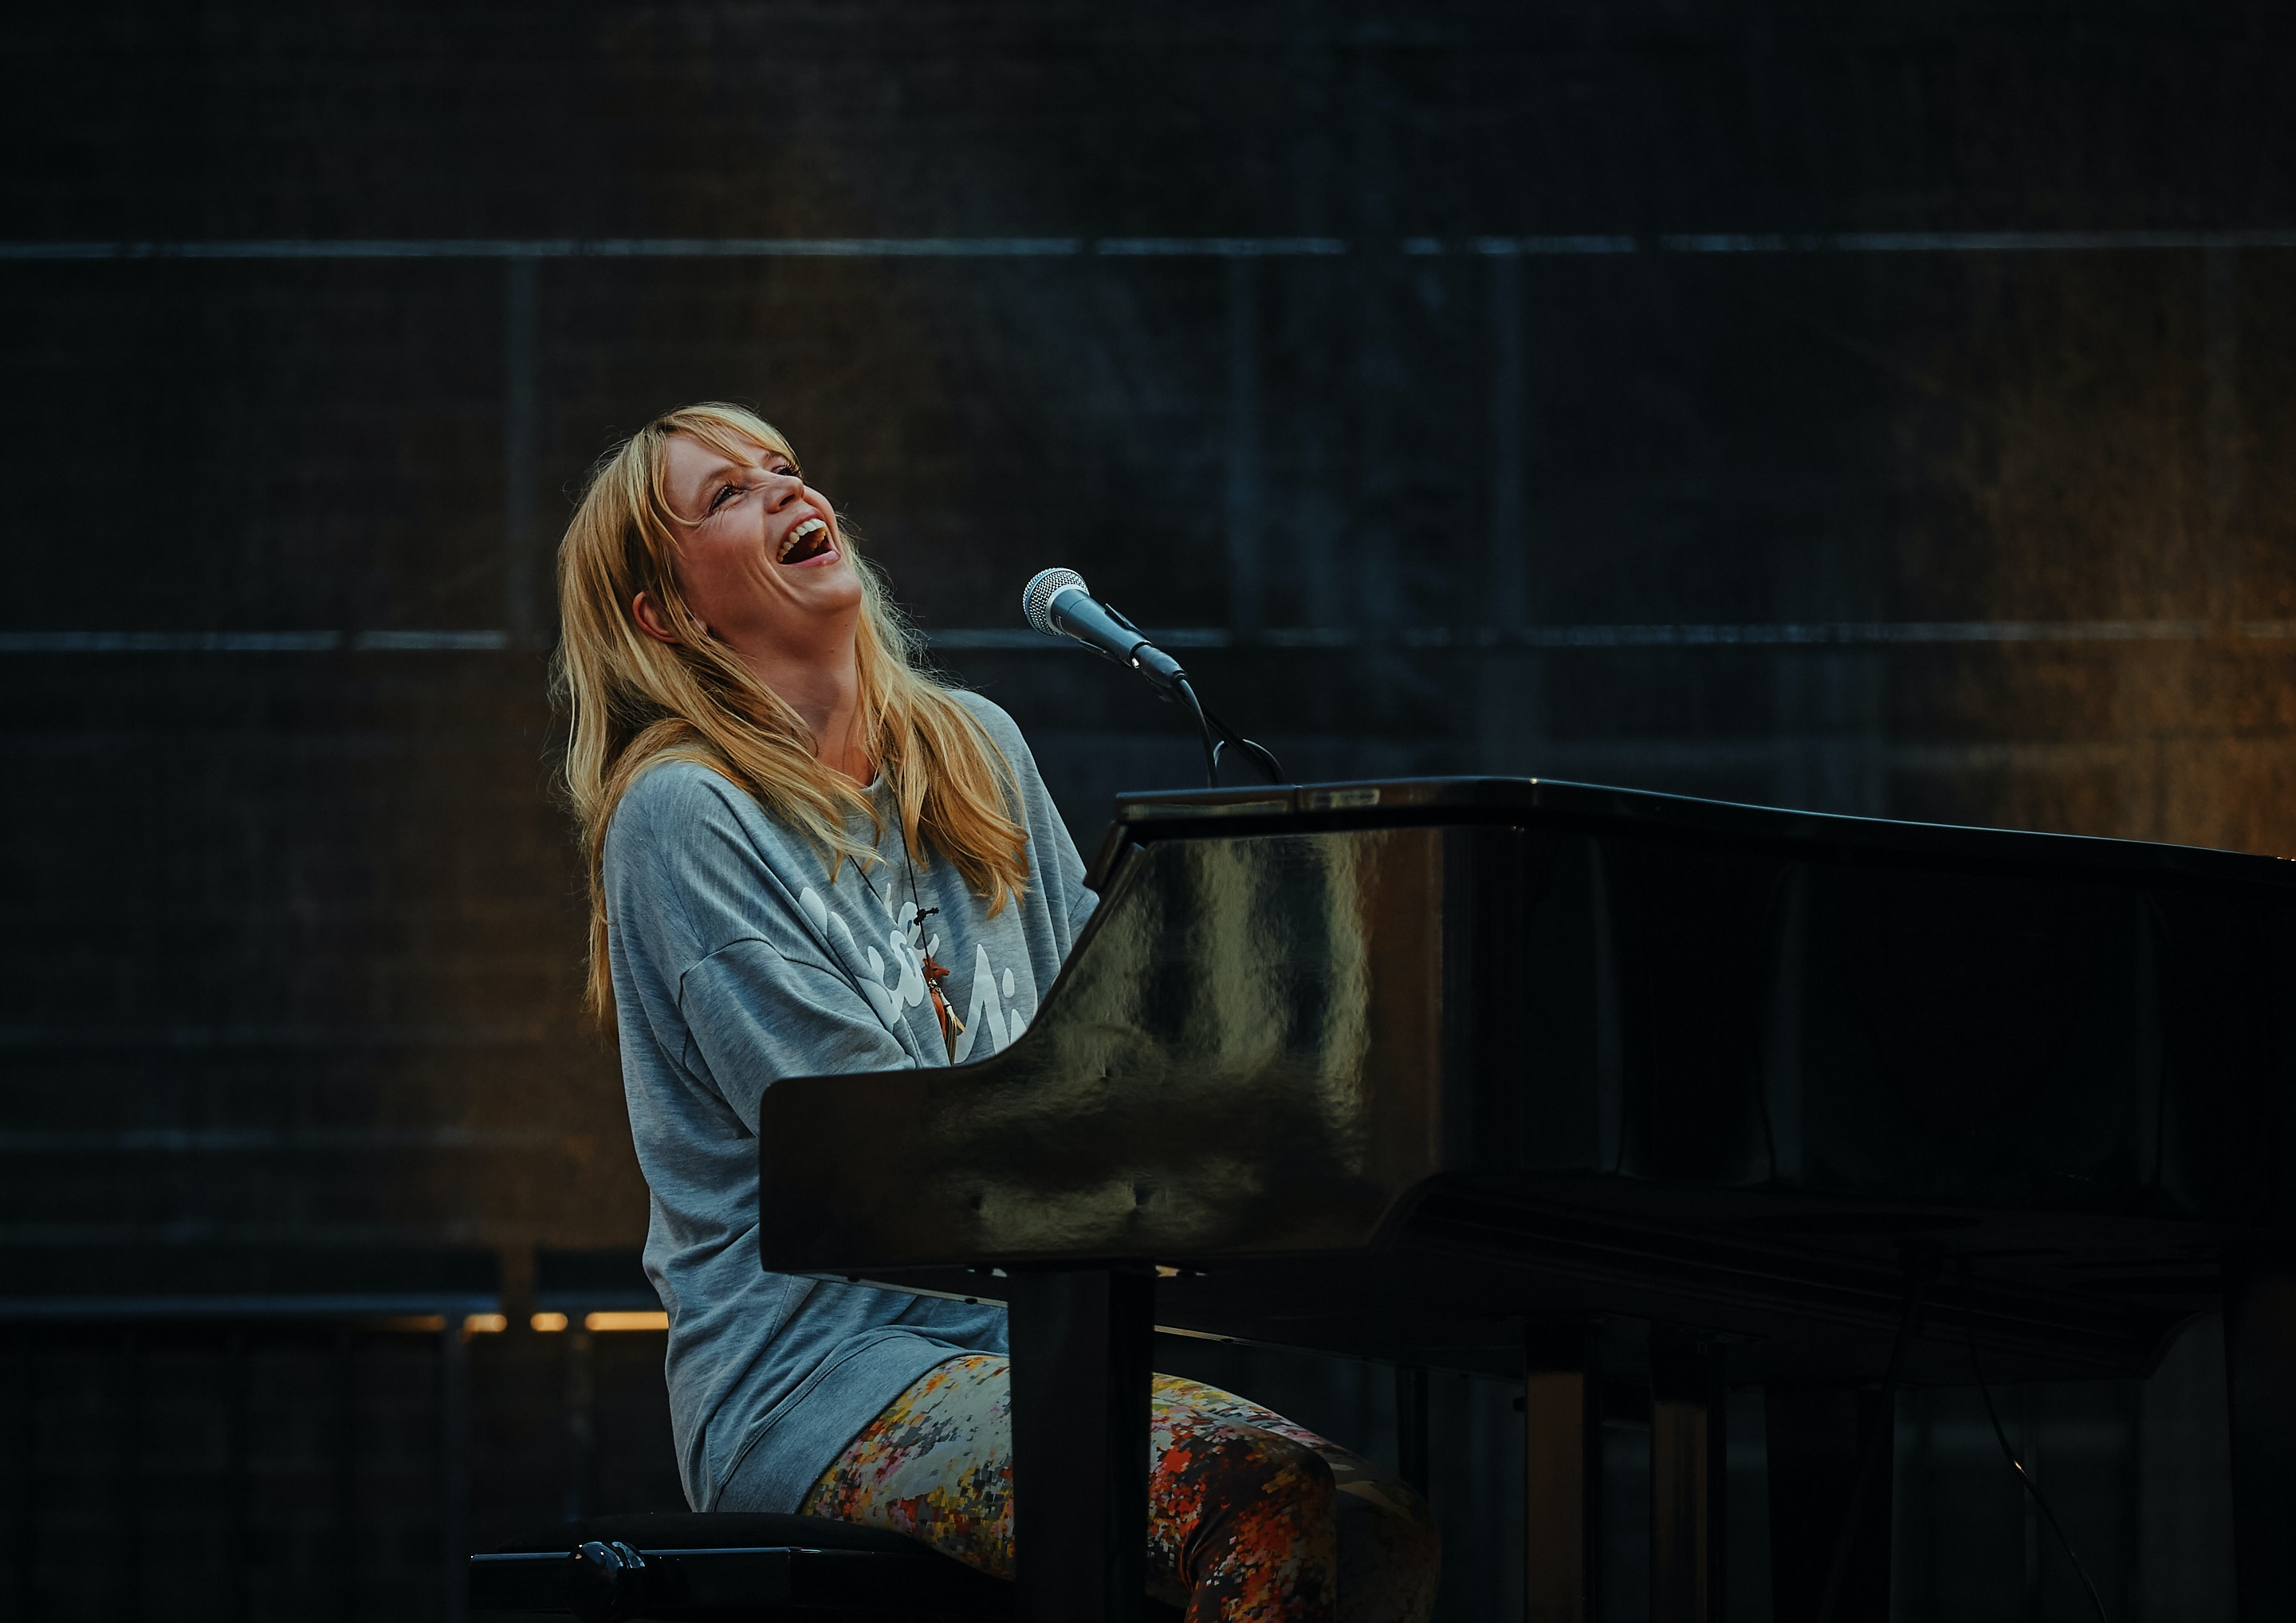 woman playing piano while laughing